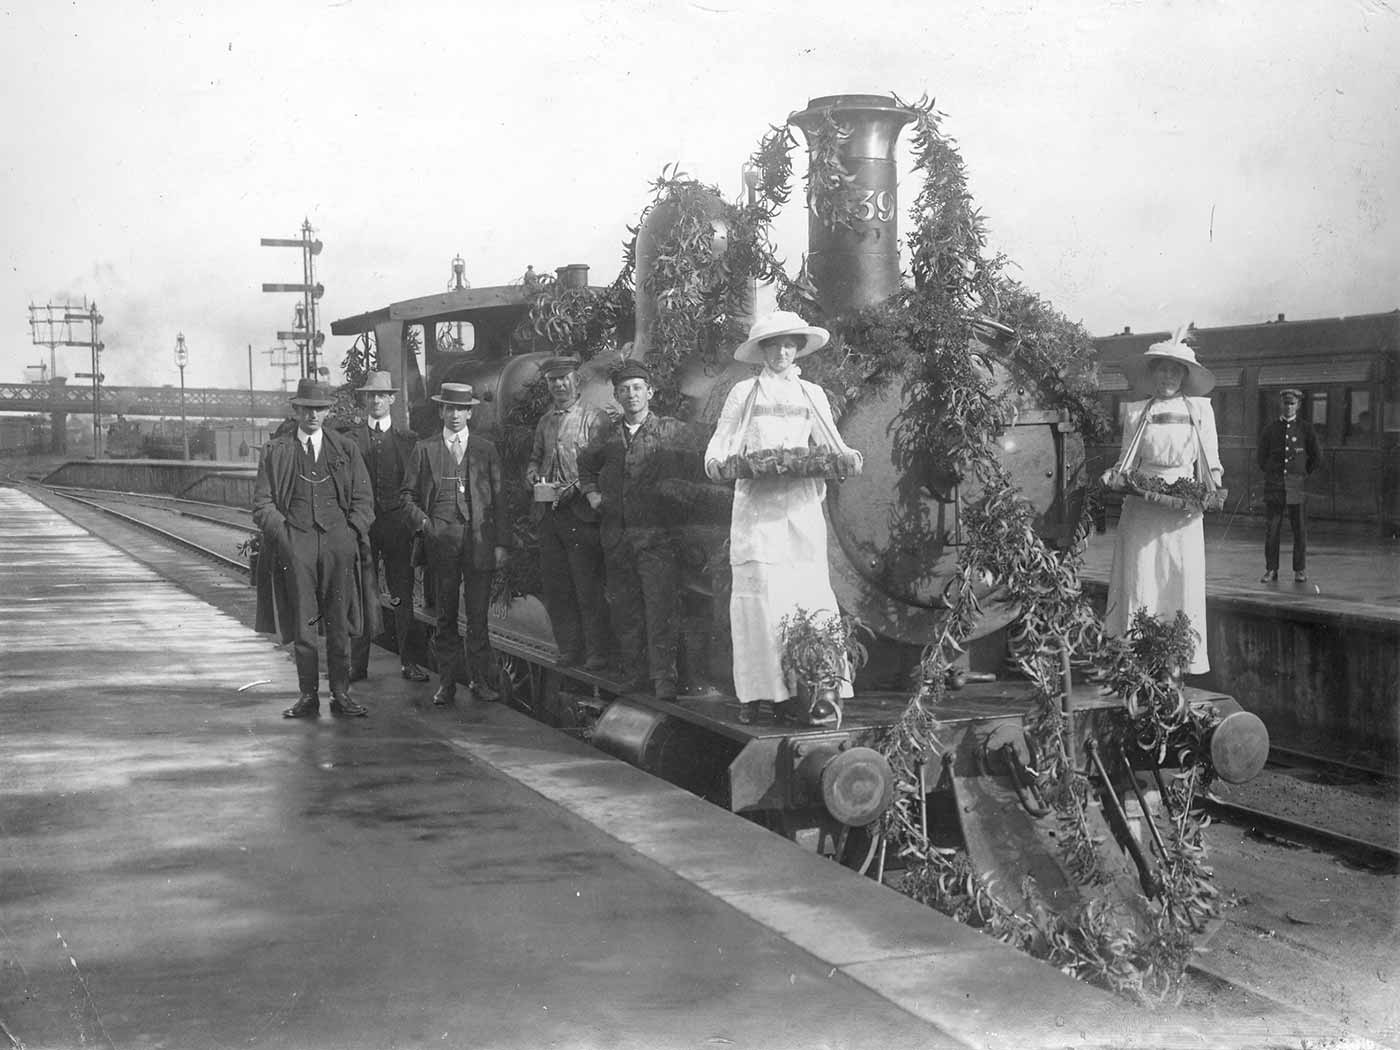 Train engine adorned with plant material. A group of people stand in front of and beside the engine.